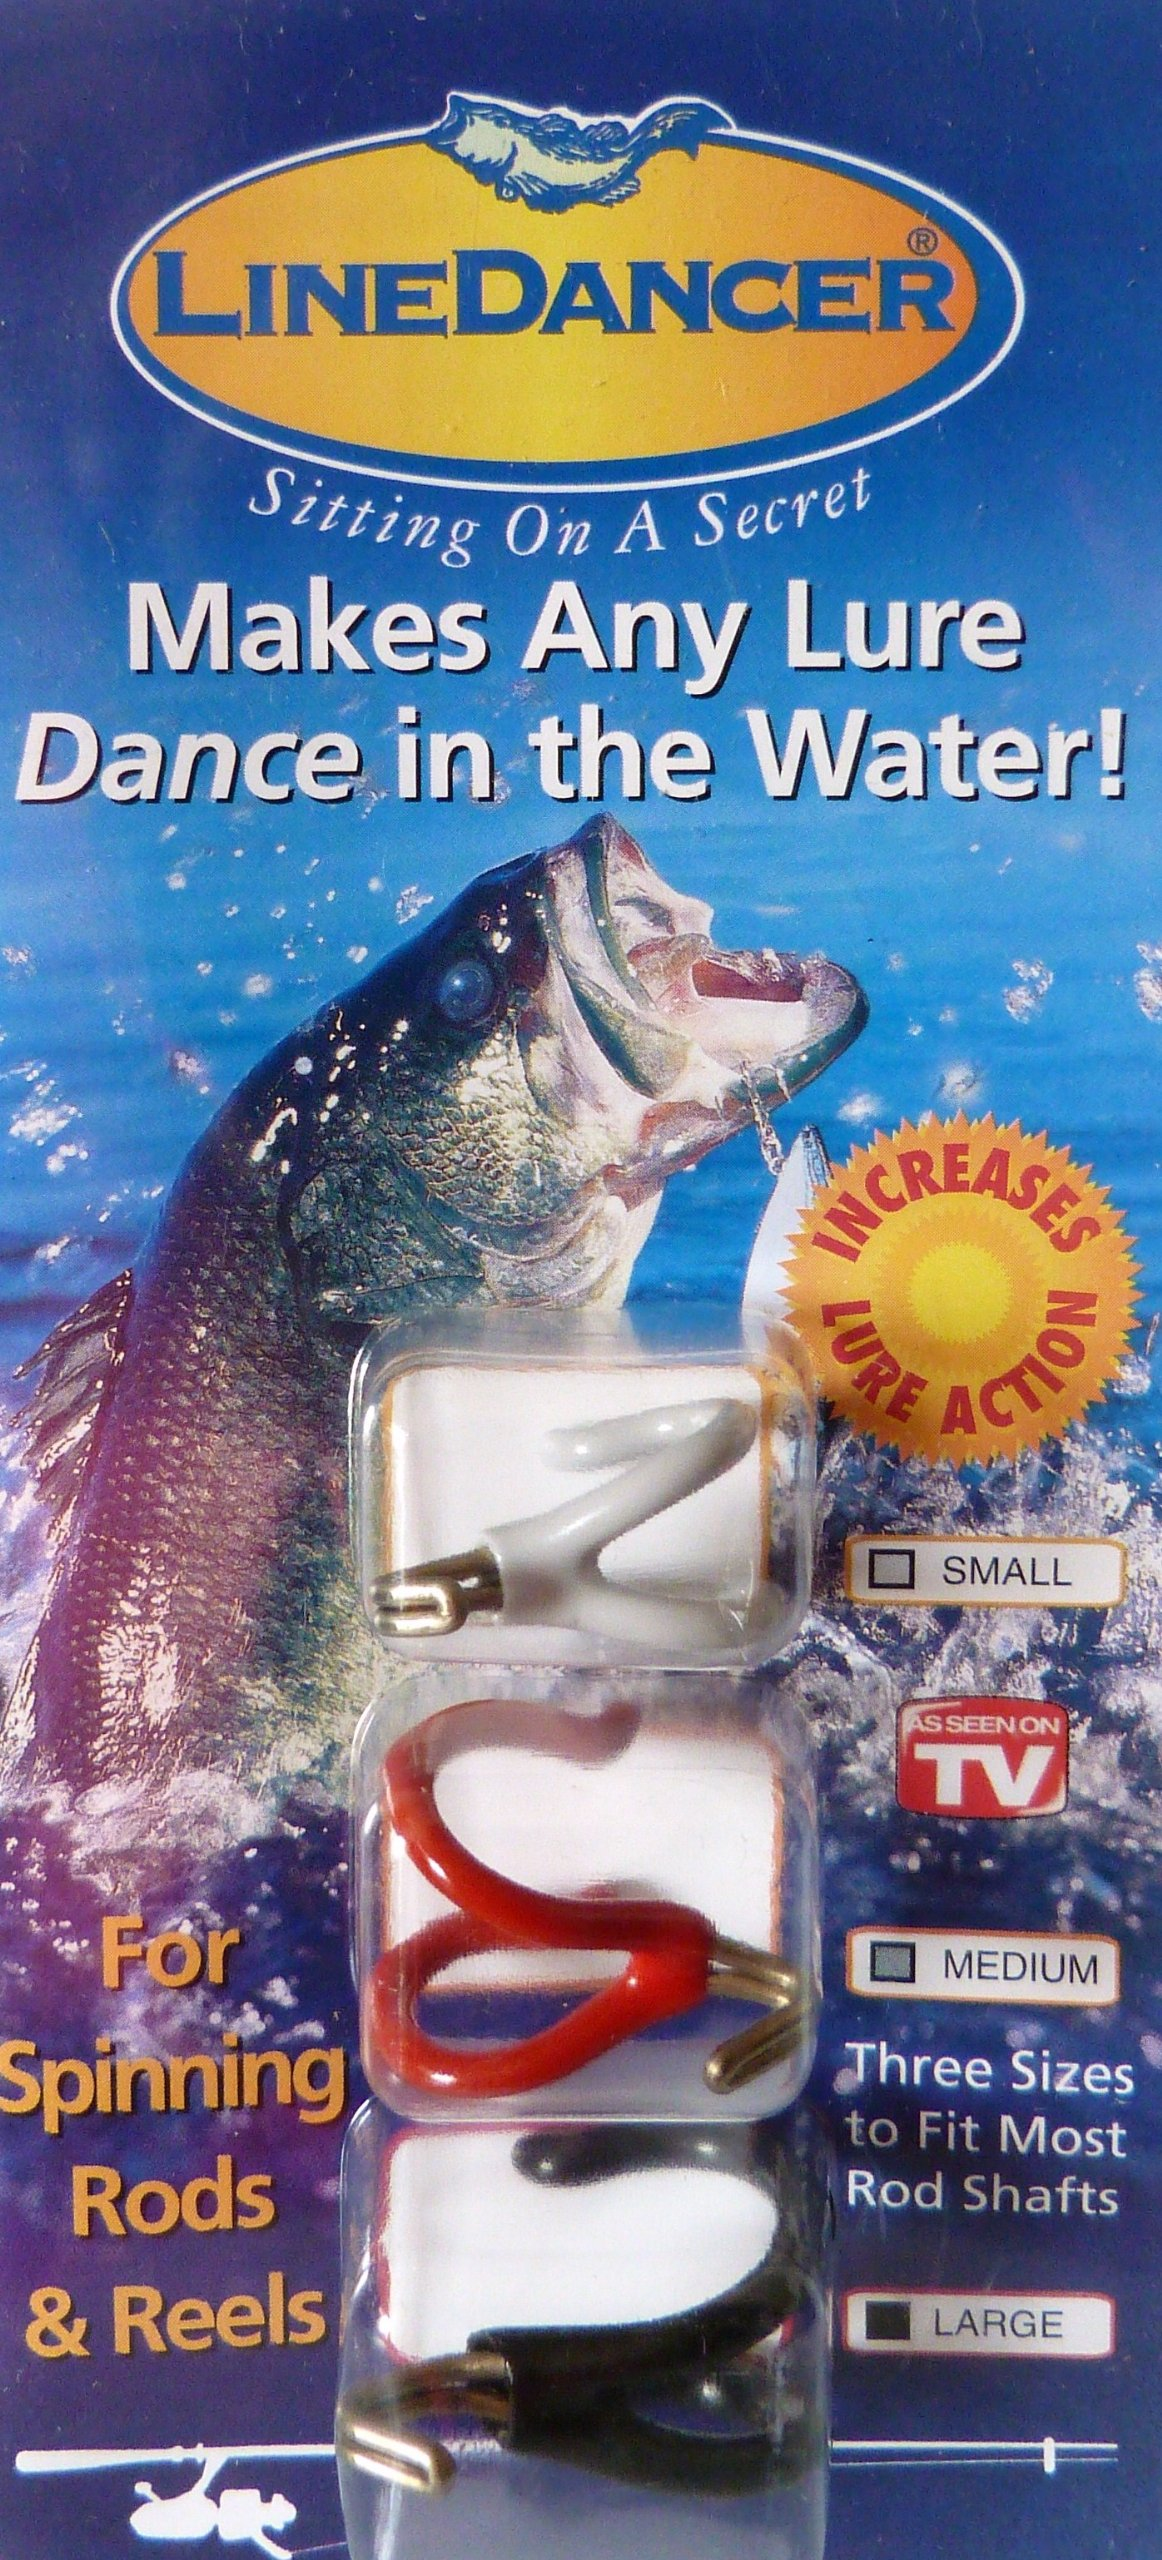 LineDancer Fishing Tool Increases Lure and Bait Action for Spinning Reels